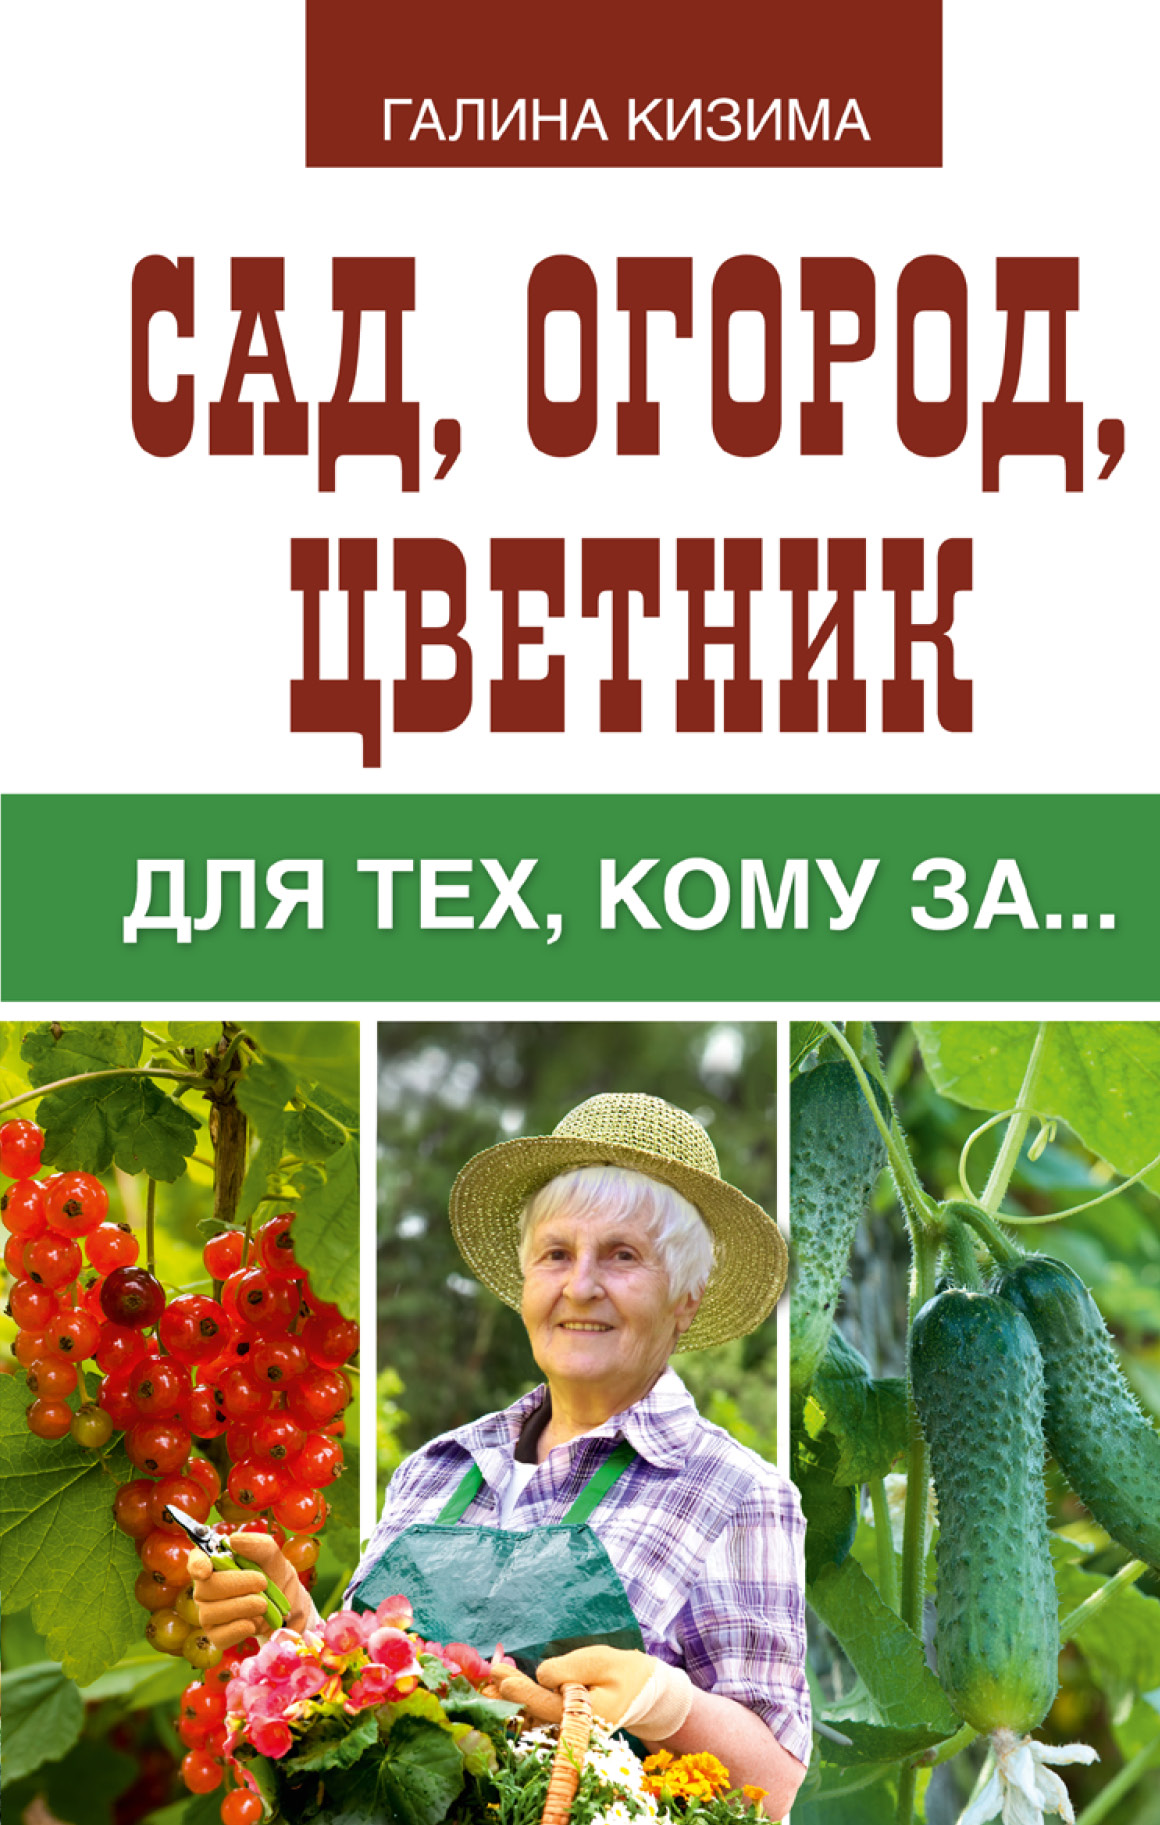 Кизима Г.А. Сад, огород, цветник для тех, кому за… butterfly 250 pcs all different used postage stamps in good condition for collecting wholesale